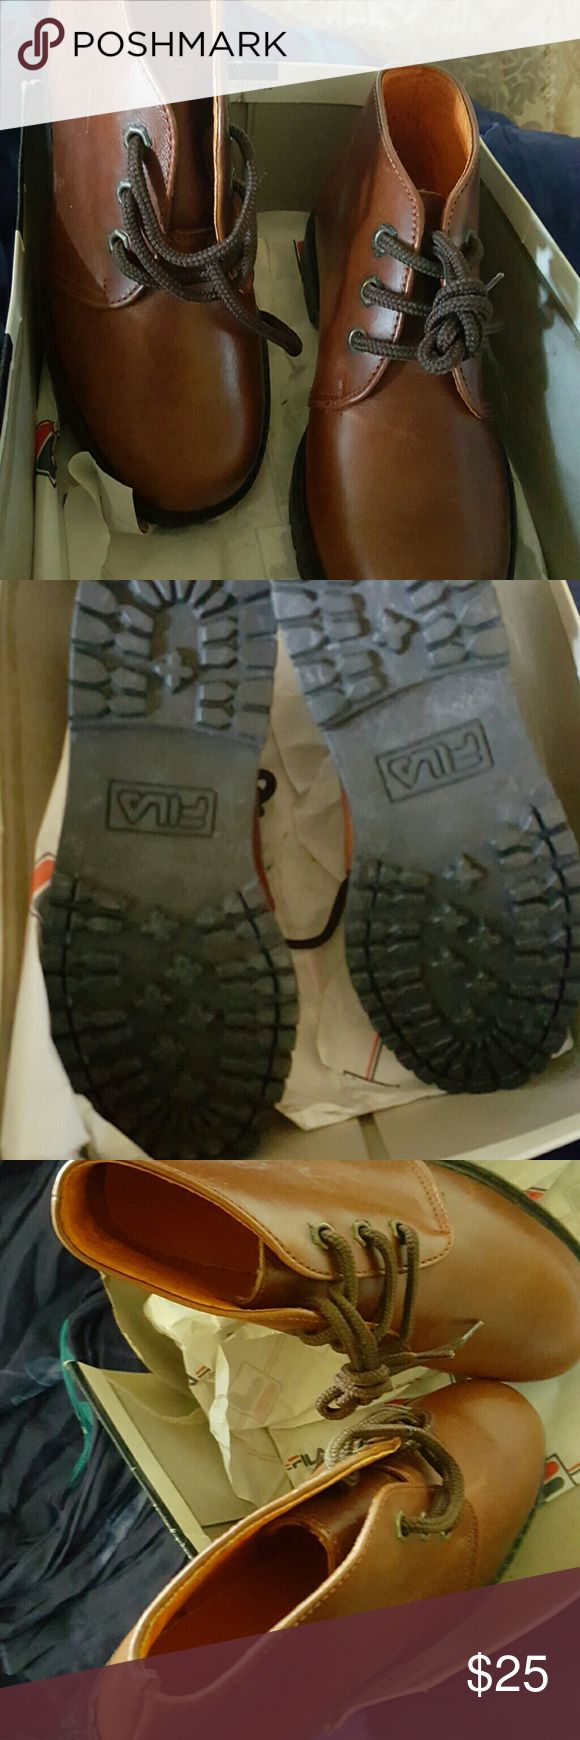 Fila Boots Fila Boots, brand new rugged boots, brand new never worn. Fila Shoes Lace Up Boots